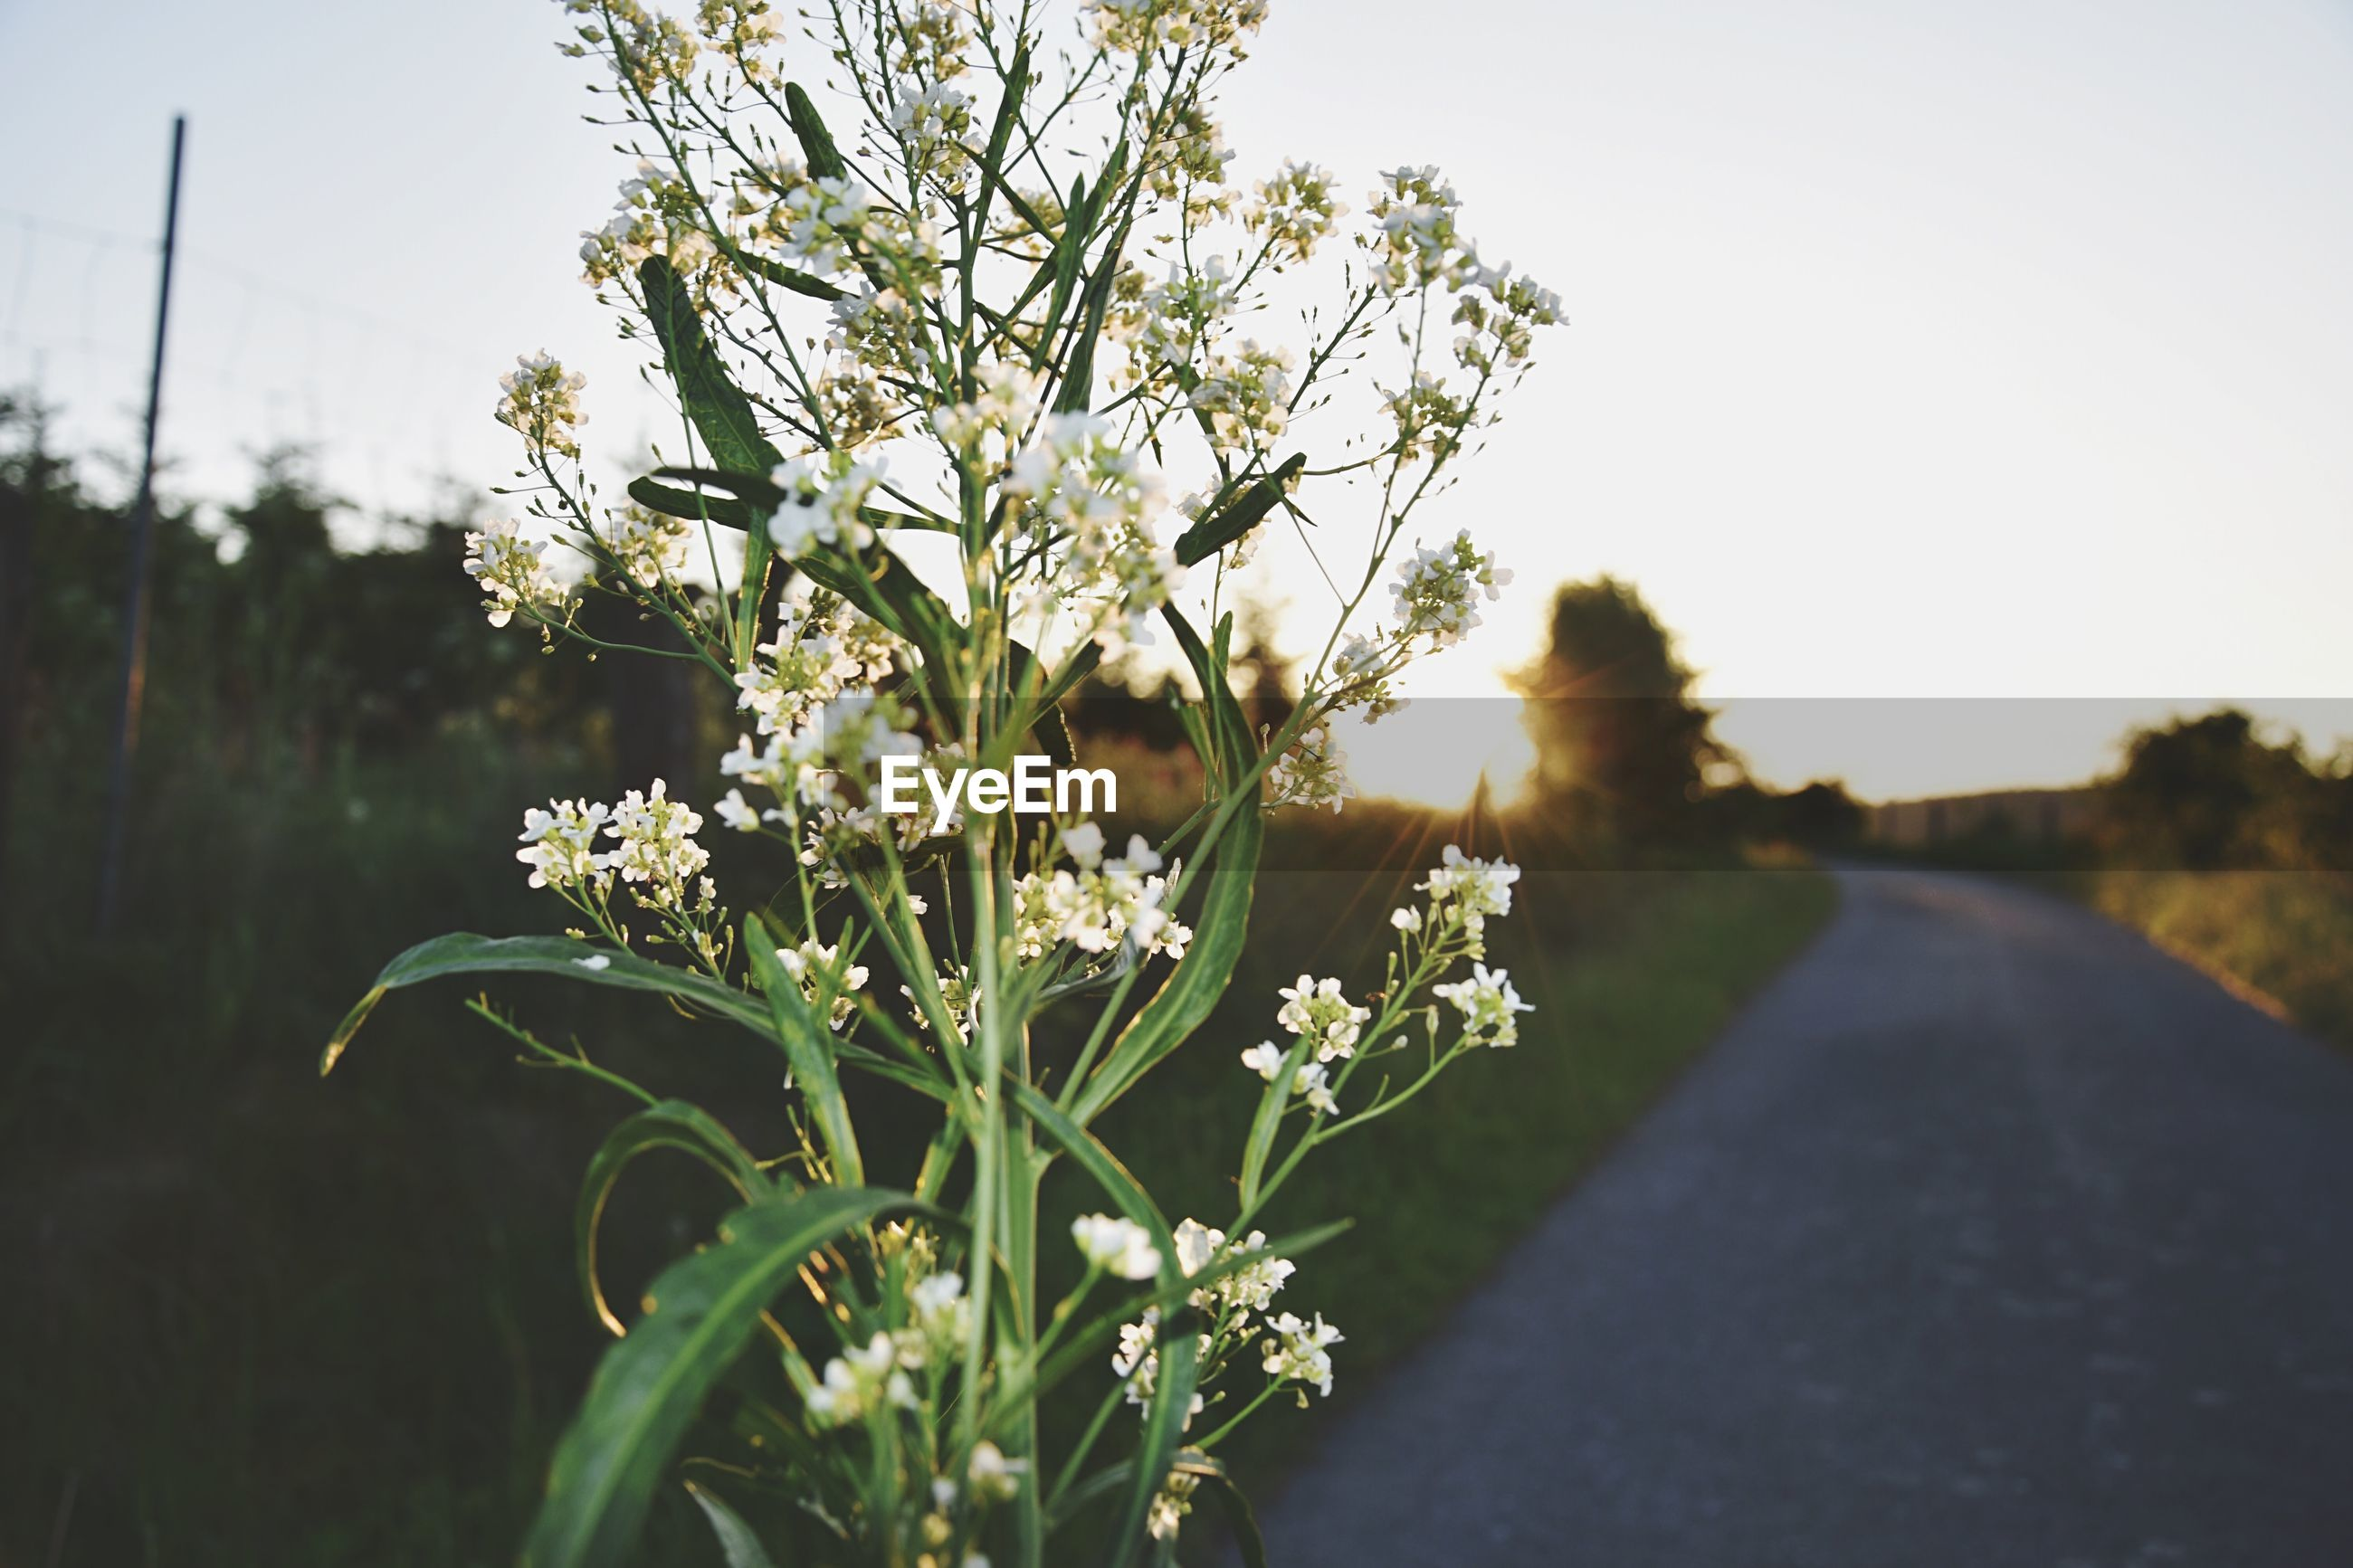 CLOSE-UP OF FLOWERING PLANT ON ROAD AMIDST FIELD